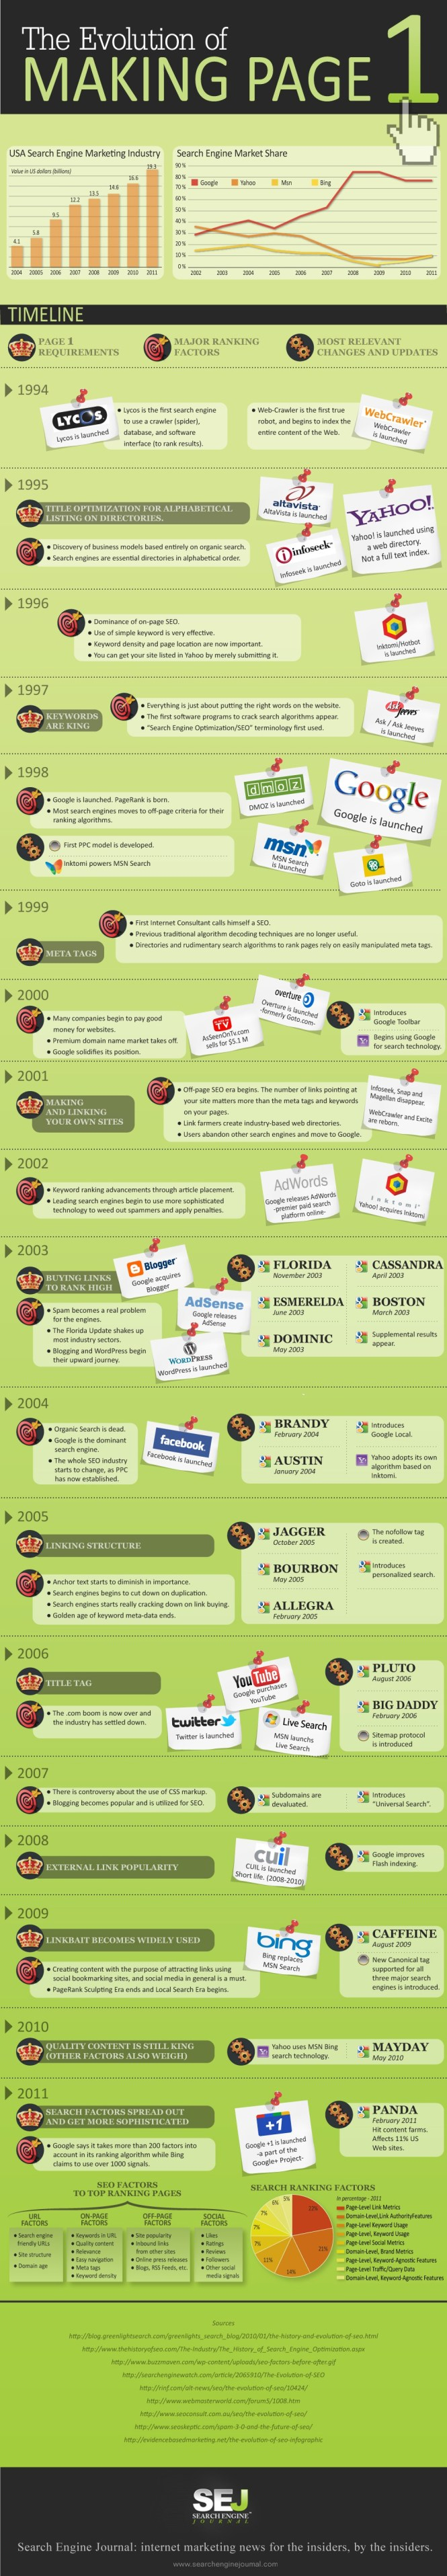 The Evolution of Making Page 1 [INFOGRAPHIC]